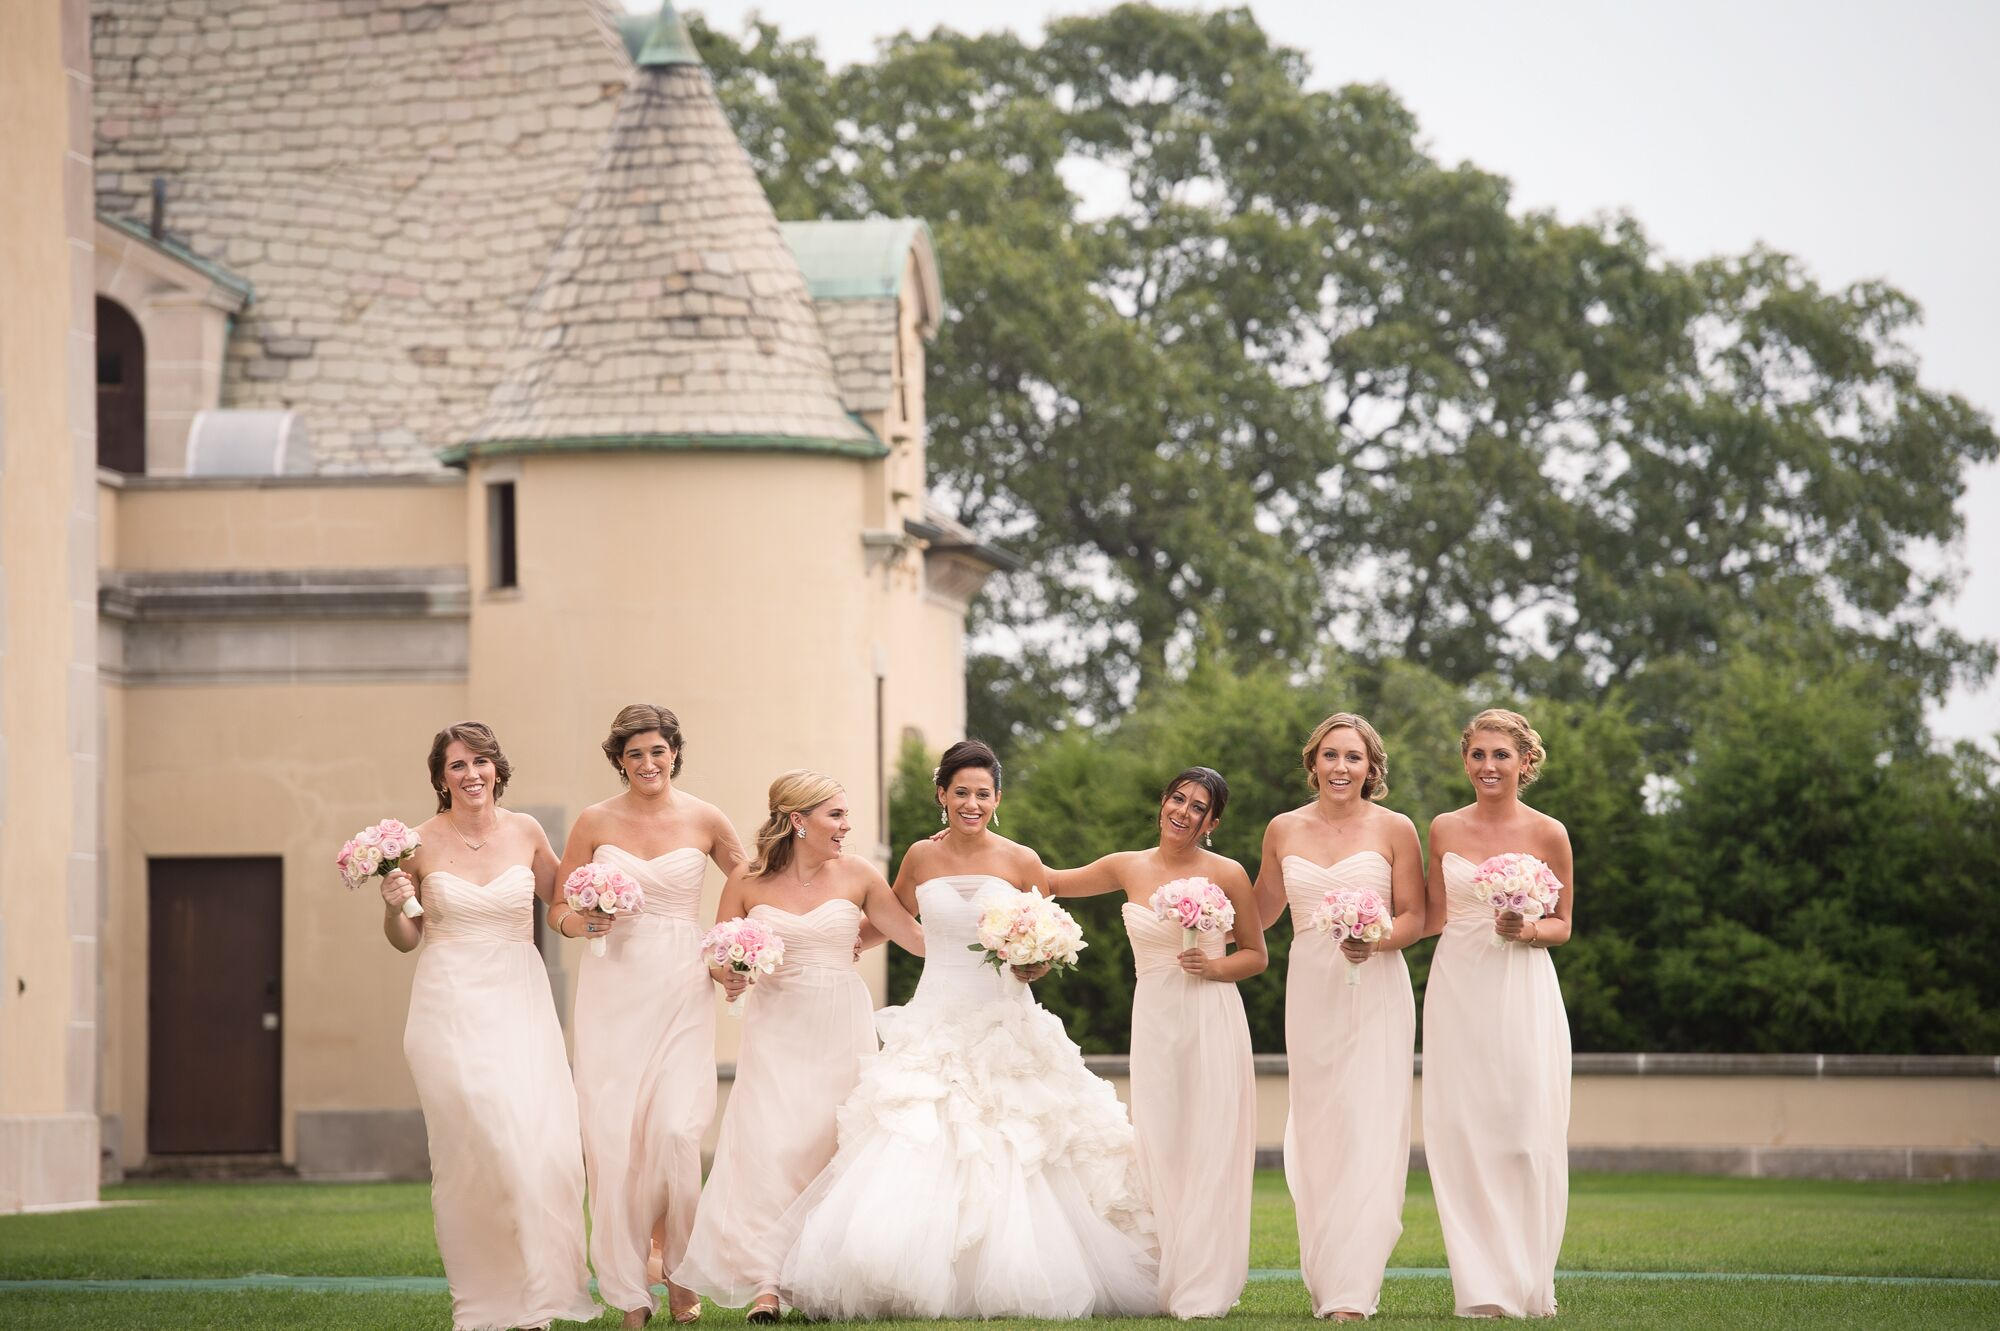 Strapless, Floor-Length, Champagne-Colored Bridesmaid